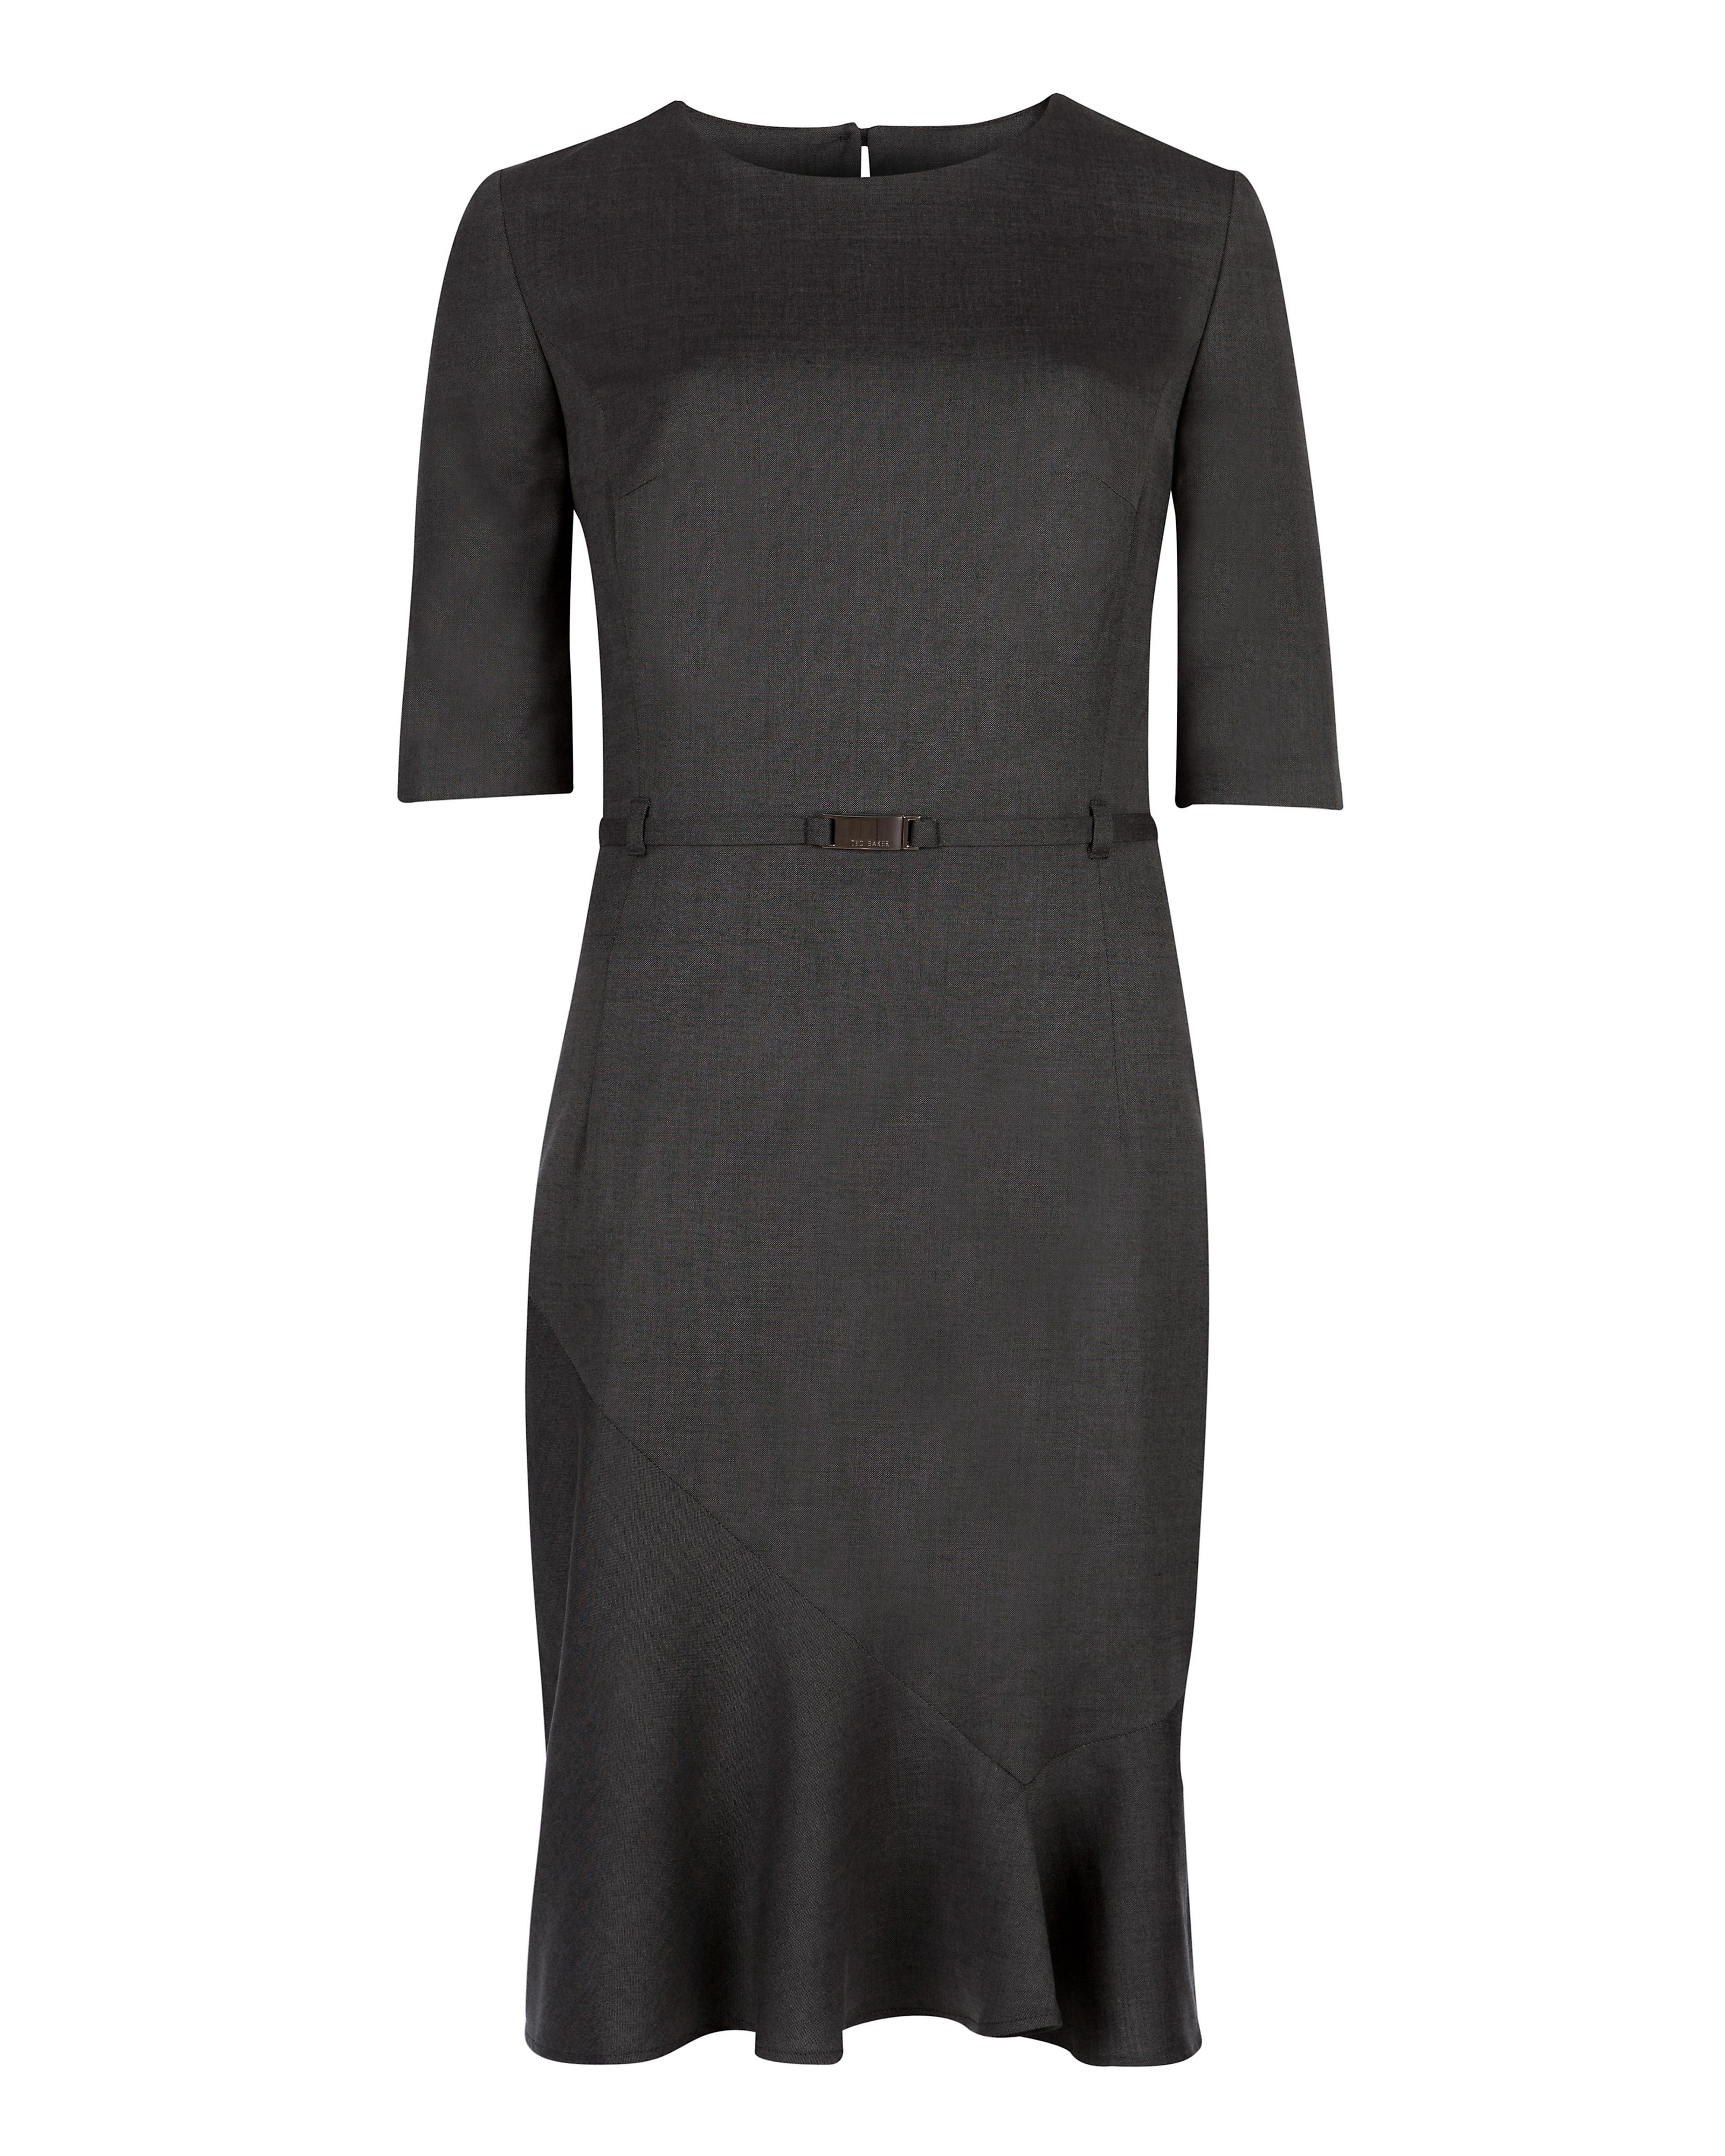 Talled tonic suit dress